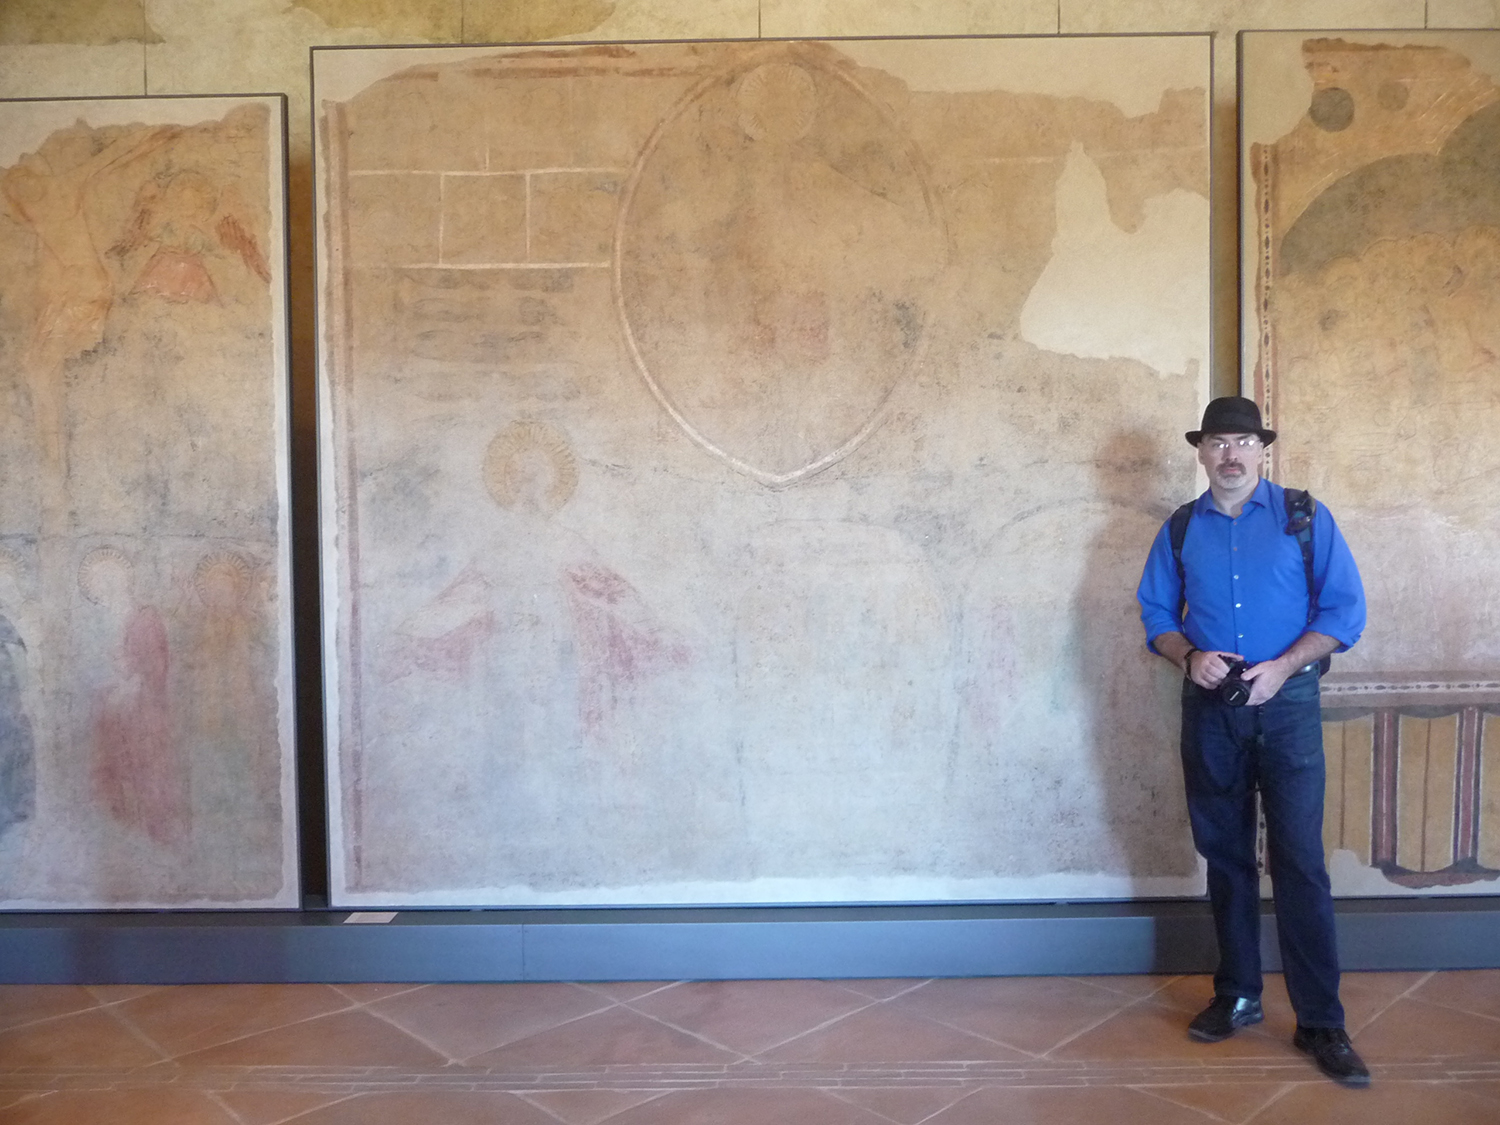 Figure 12. The author stands before a detached fresco—actually the layer of plaster and pigment remaining when the  Second Coming  fresco was removed from the wall of the monastery of Santa Maria inter Angelos, itself now detached and exhibited in the Museo Nazionale del Ducato, Spoleto. Photograph by Caroline Kline.